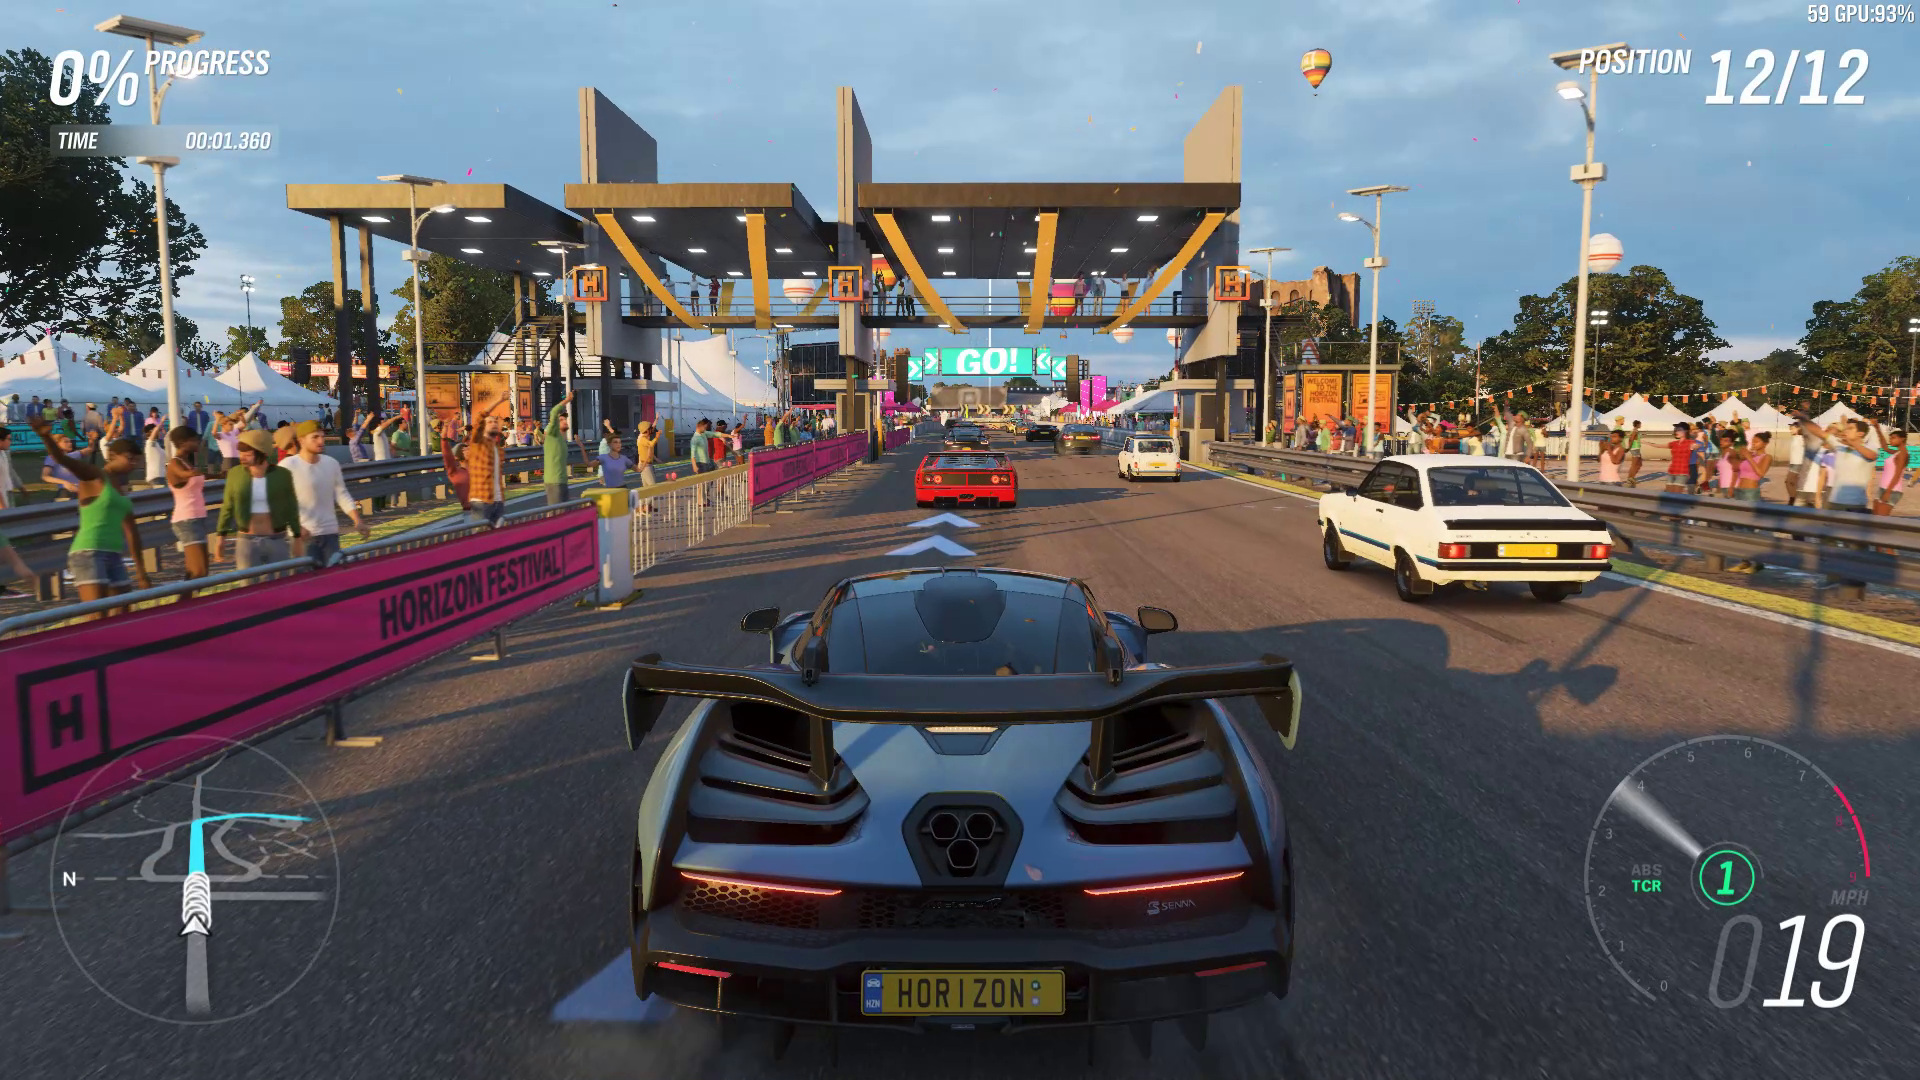 Forza Horizon 4 PC performance review – a luxurious ride | PCGamesN